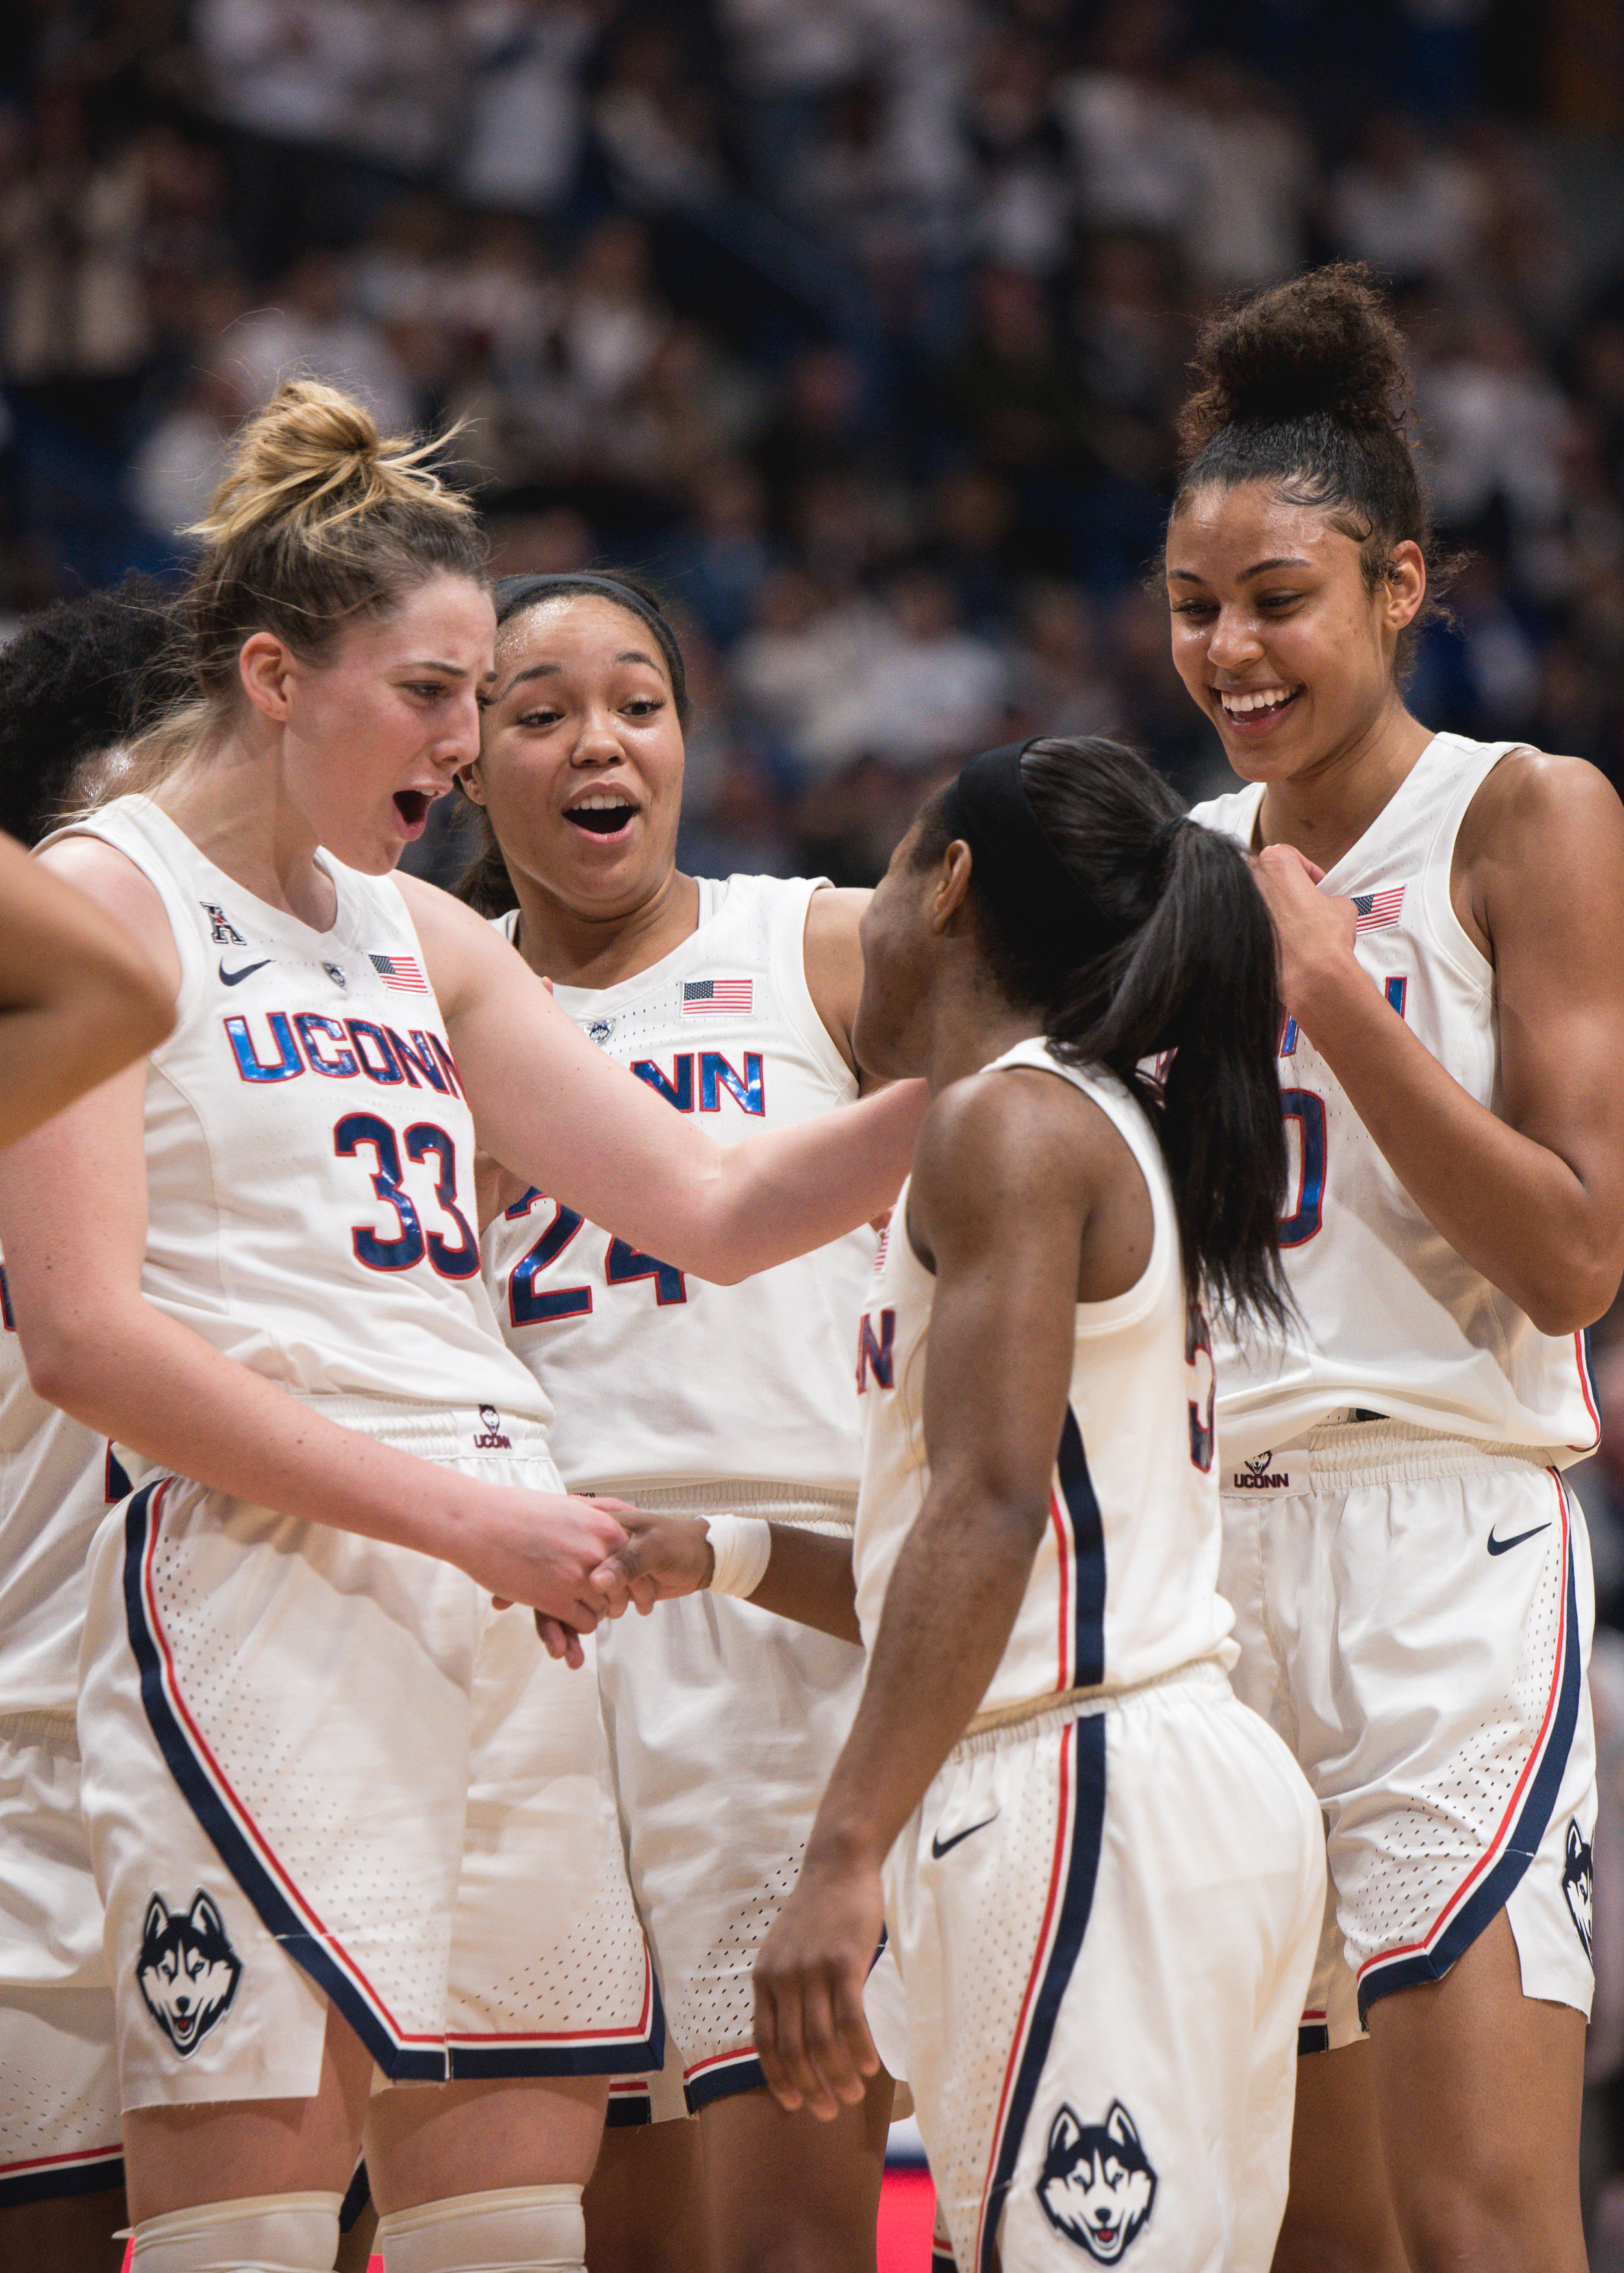 The UConn women's team embraces on another during their recent defeat of perennial contender South Carolina (Charlotte Lao/The Daily Campus)